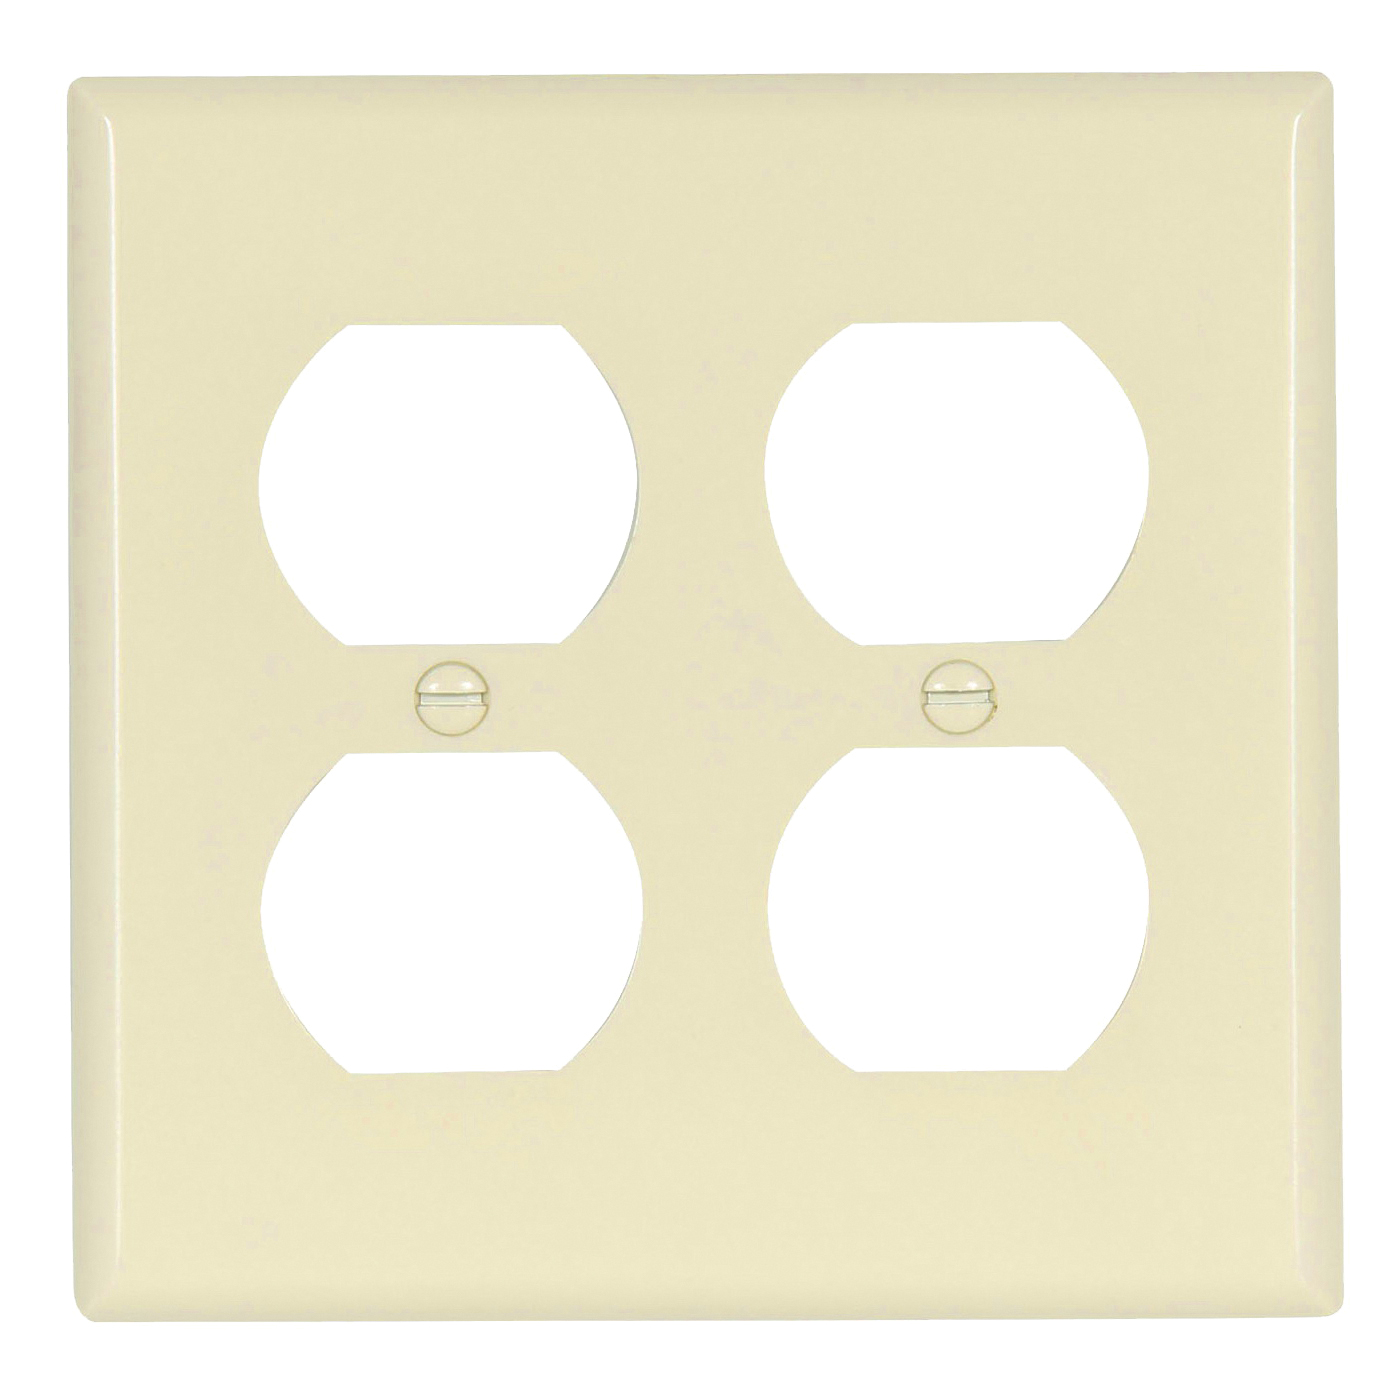 Picture of Eaton Wiring Devices 2150LA-BOX Duplex Receptacle Wallplate, 4-1/2 in L, 4-9/16 in W, 2-Gang, Thermoset